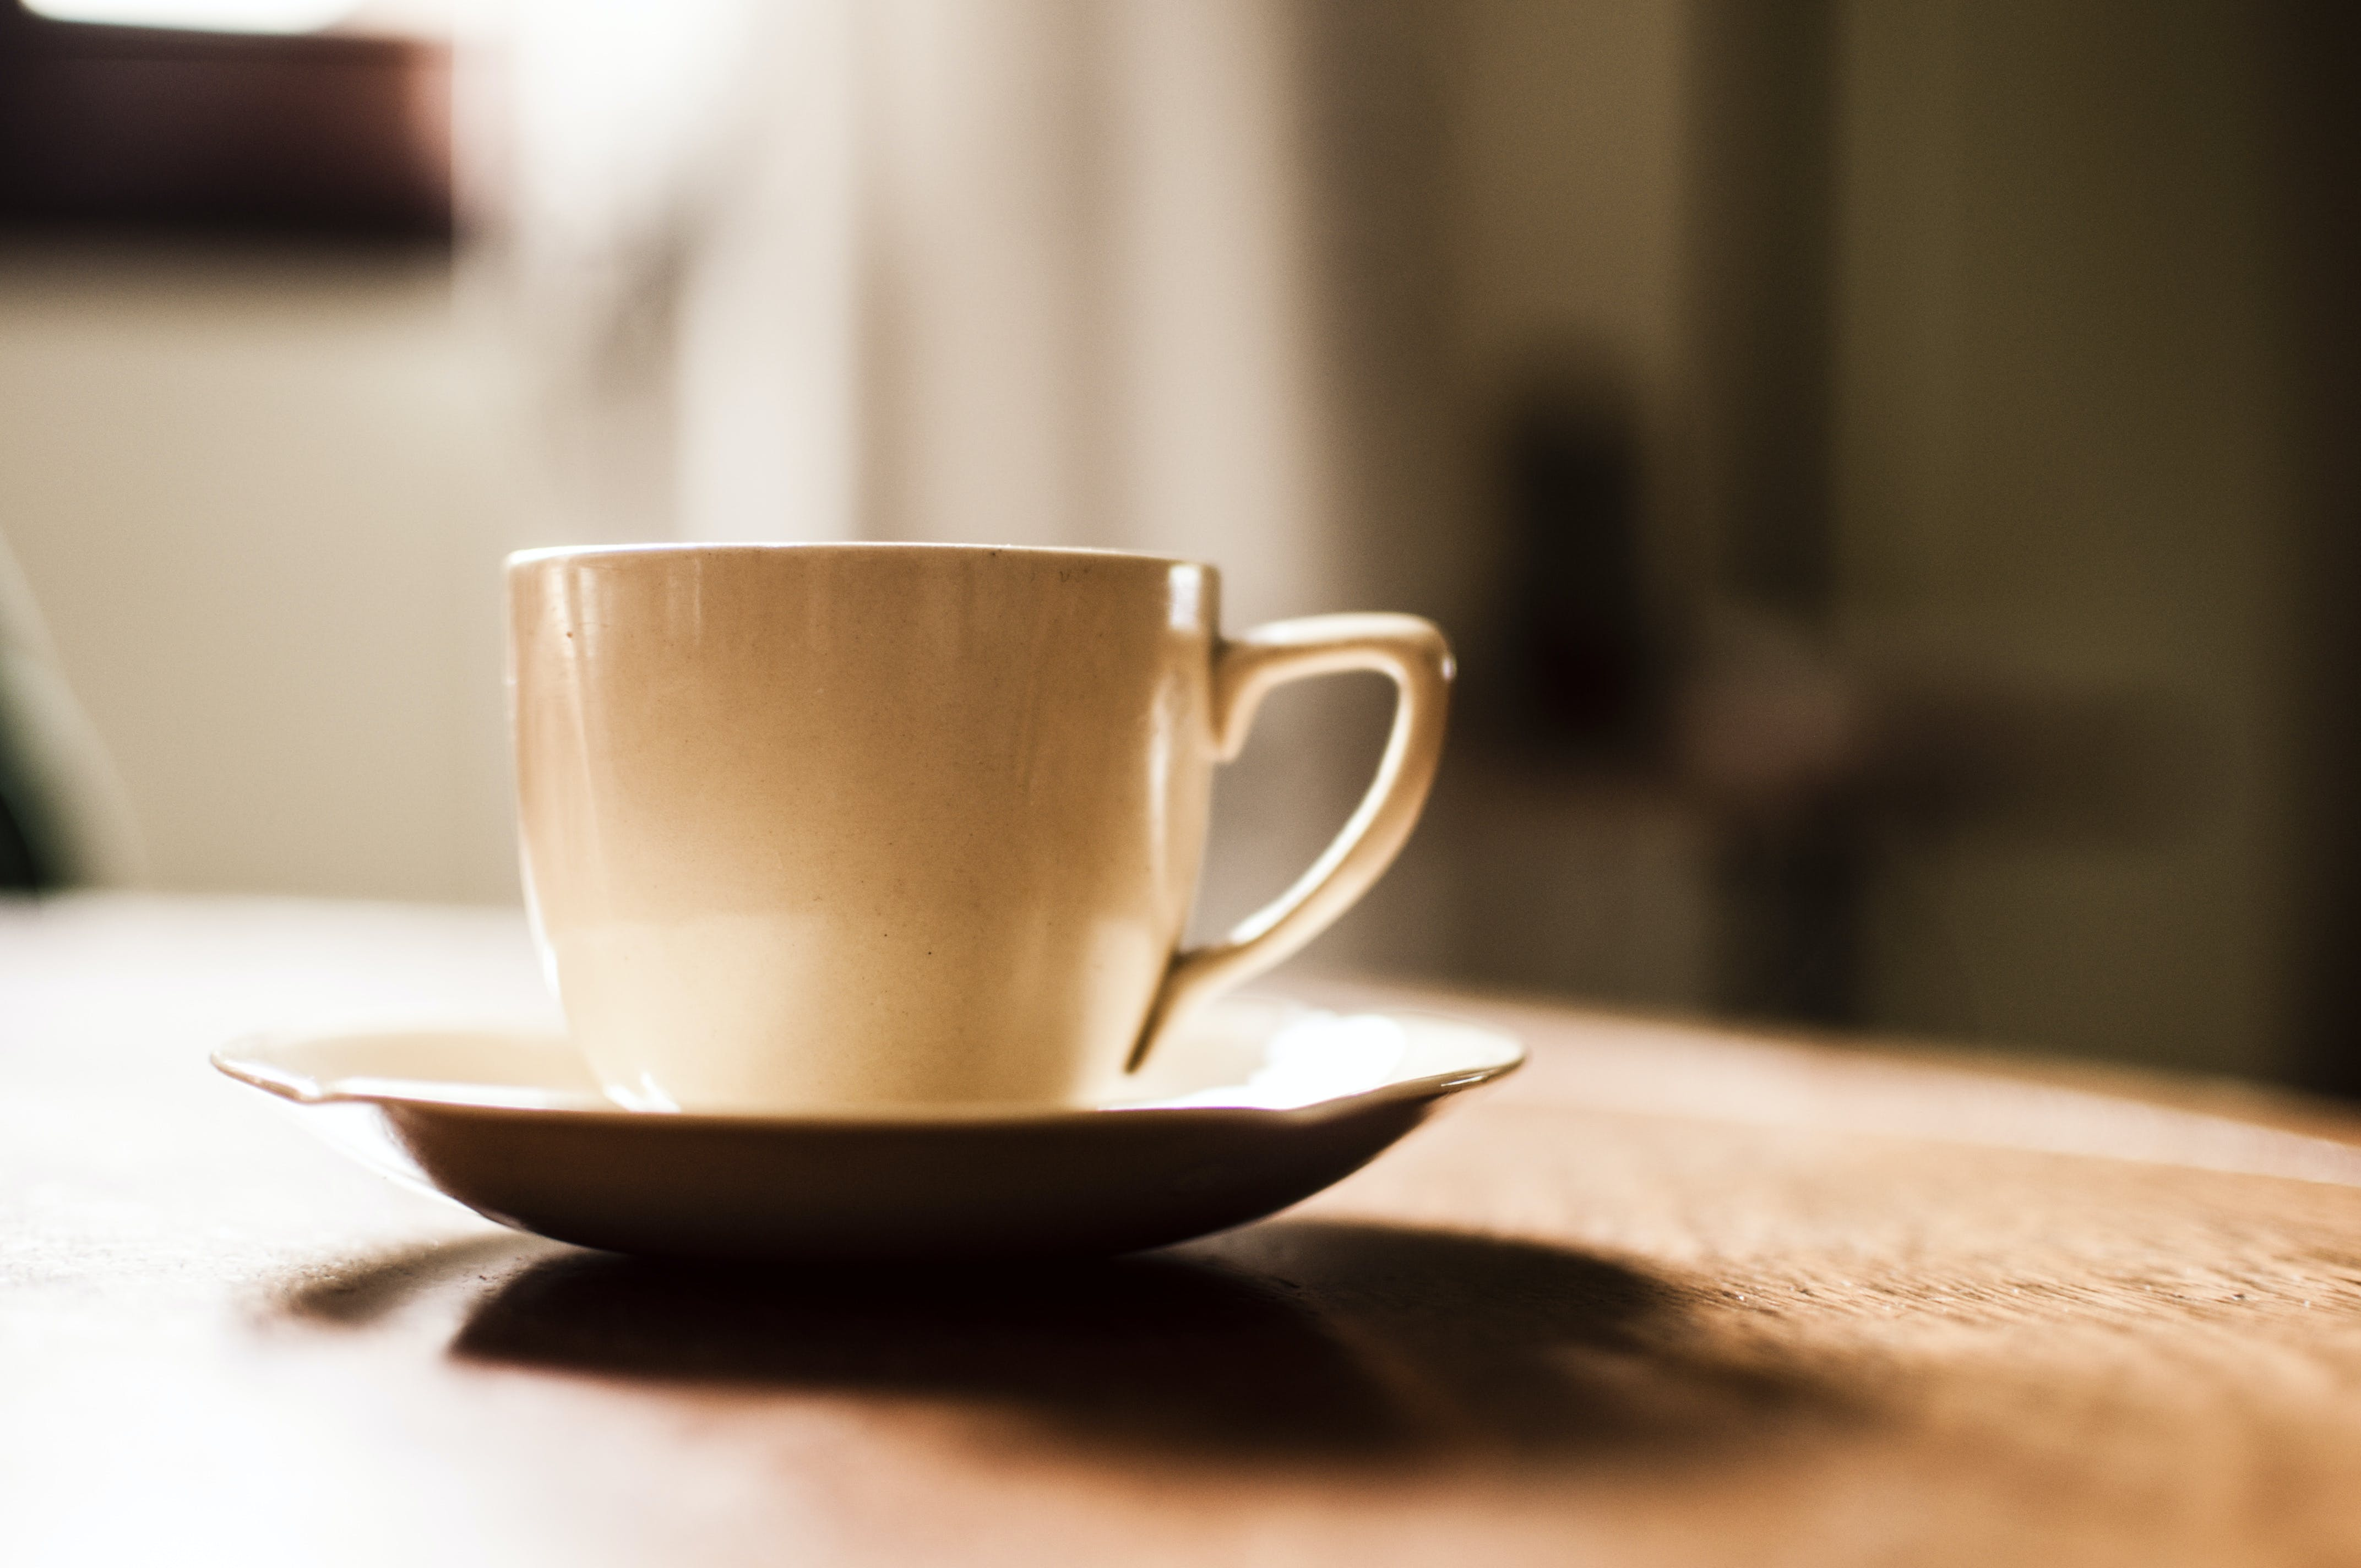 White Ceramic Teacup With Saucer on Wooden Table